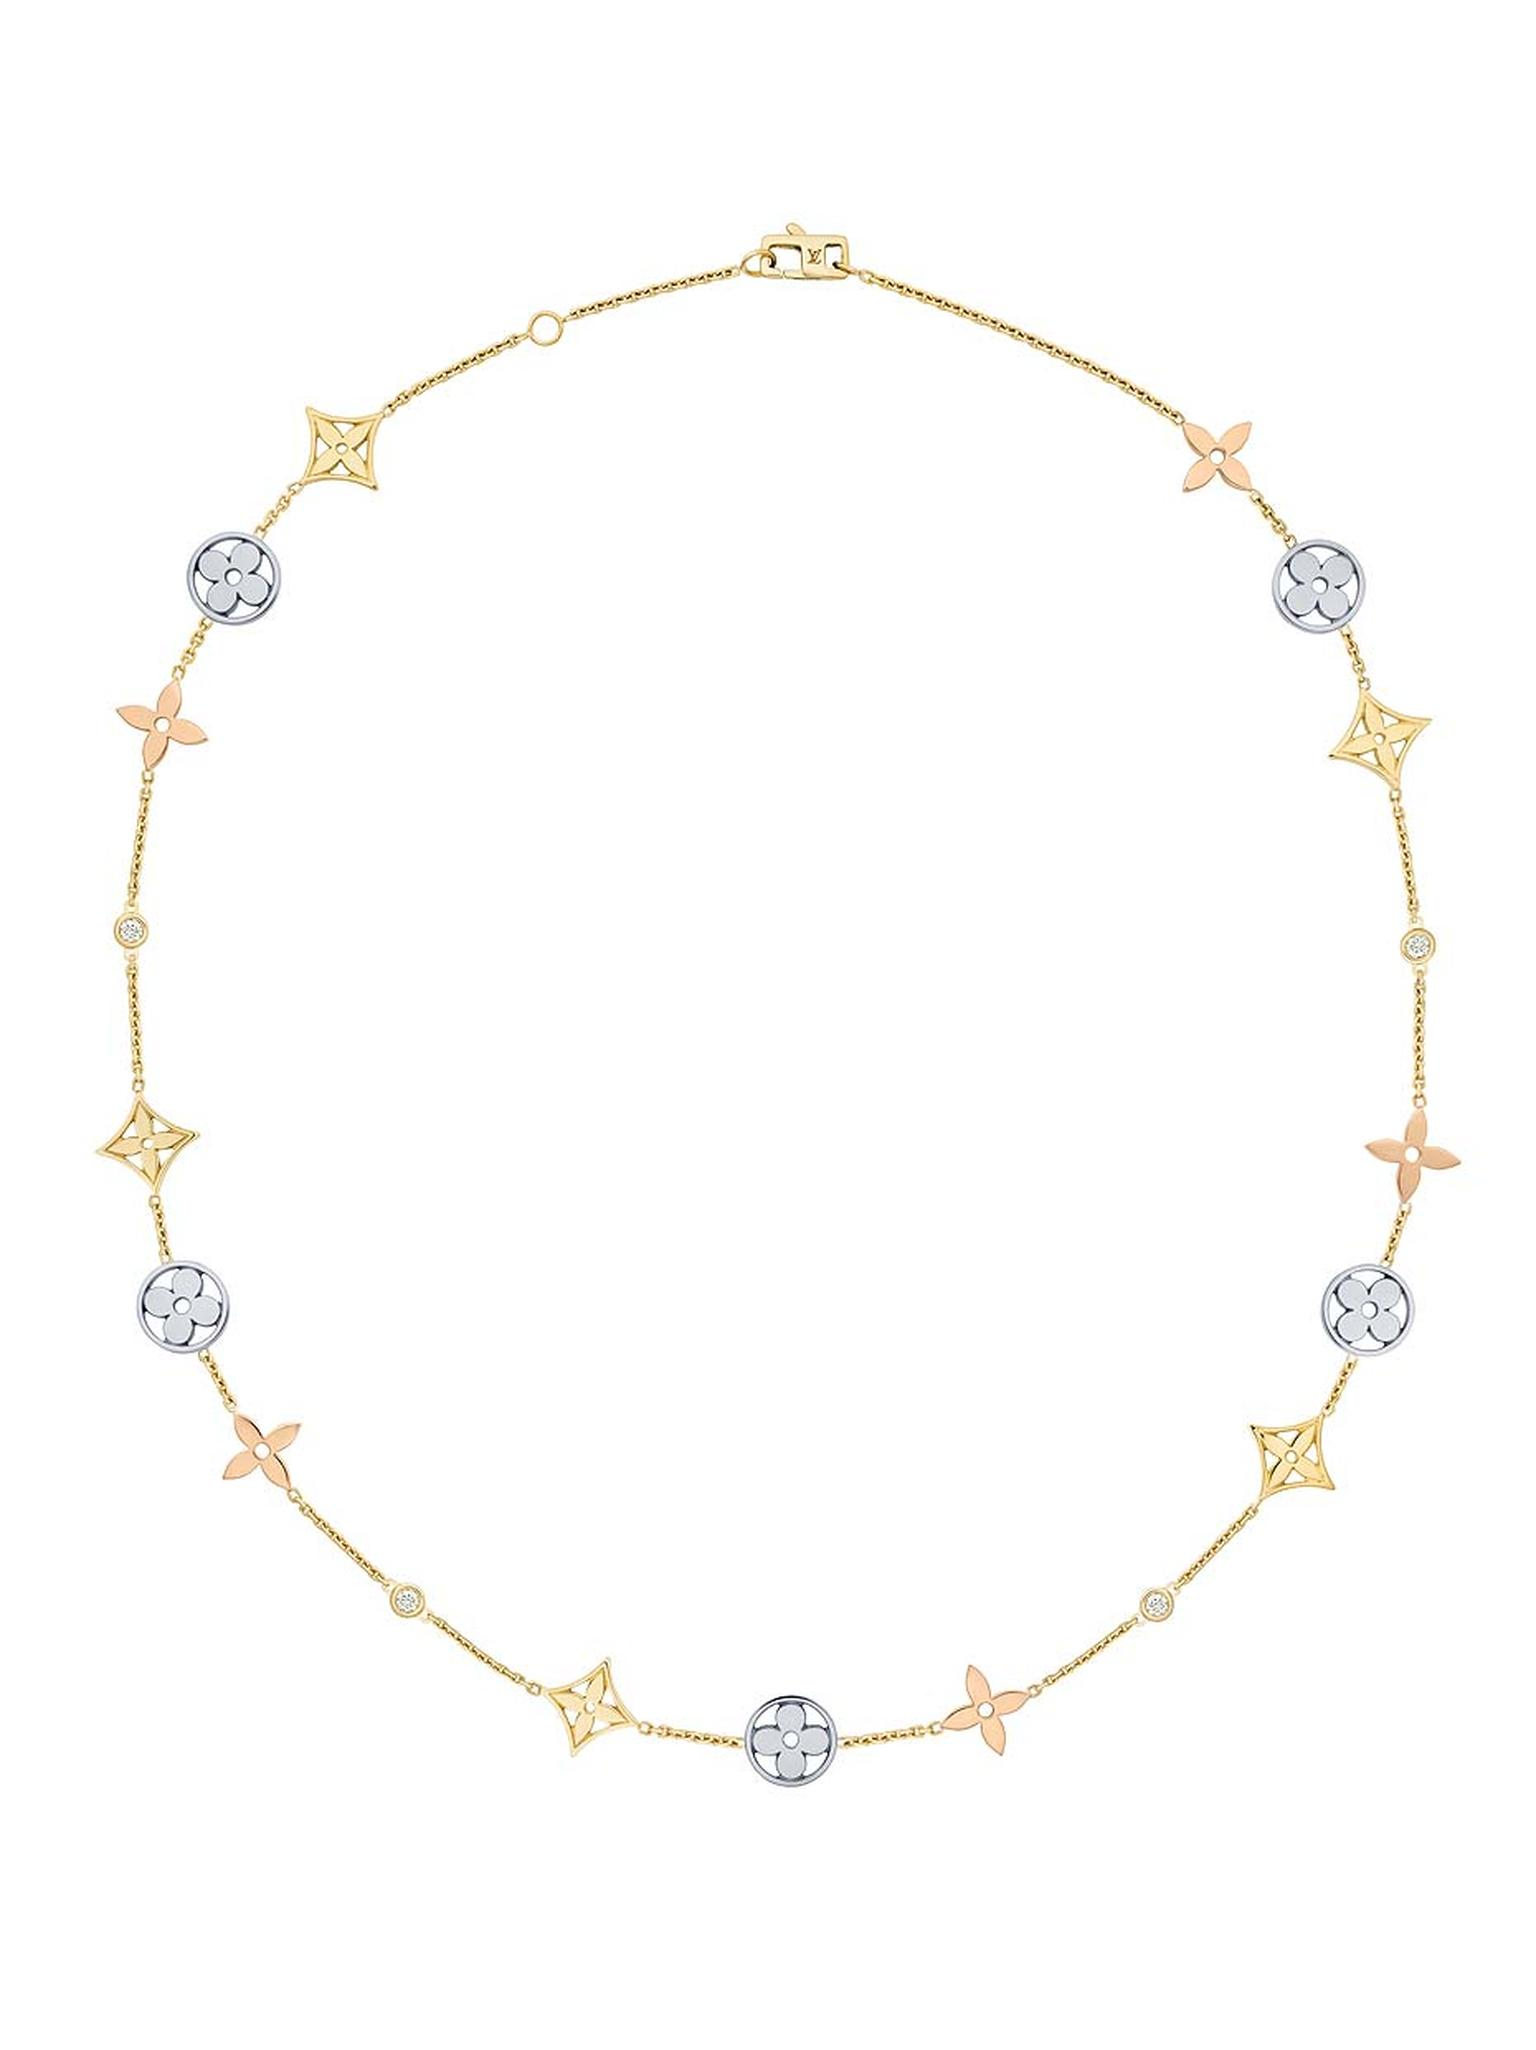 This Louis Vuitton necklace from the new Monogram Idylle collection features Louis Vuitton's signature flowers in white, yellow and pink gold with diamond accents on the chain (£4,400).